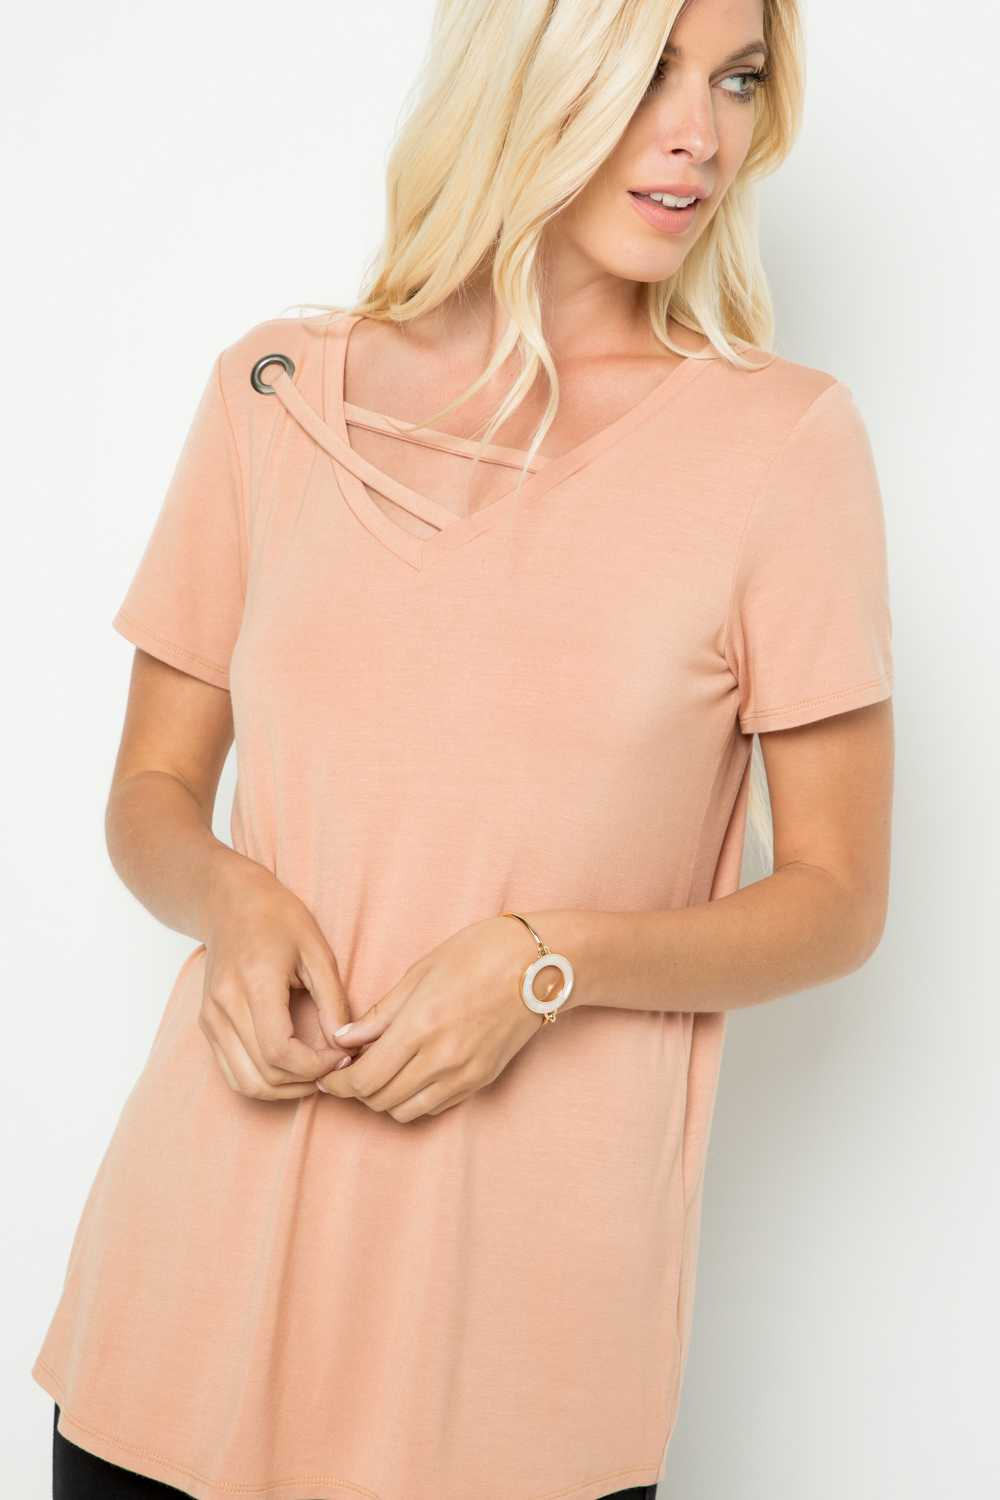 7/12 PRE ORDER-2 STRAPS DETAILED TUNIC TOP